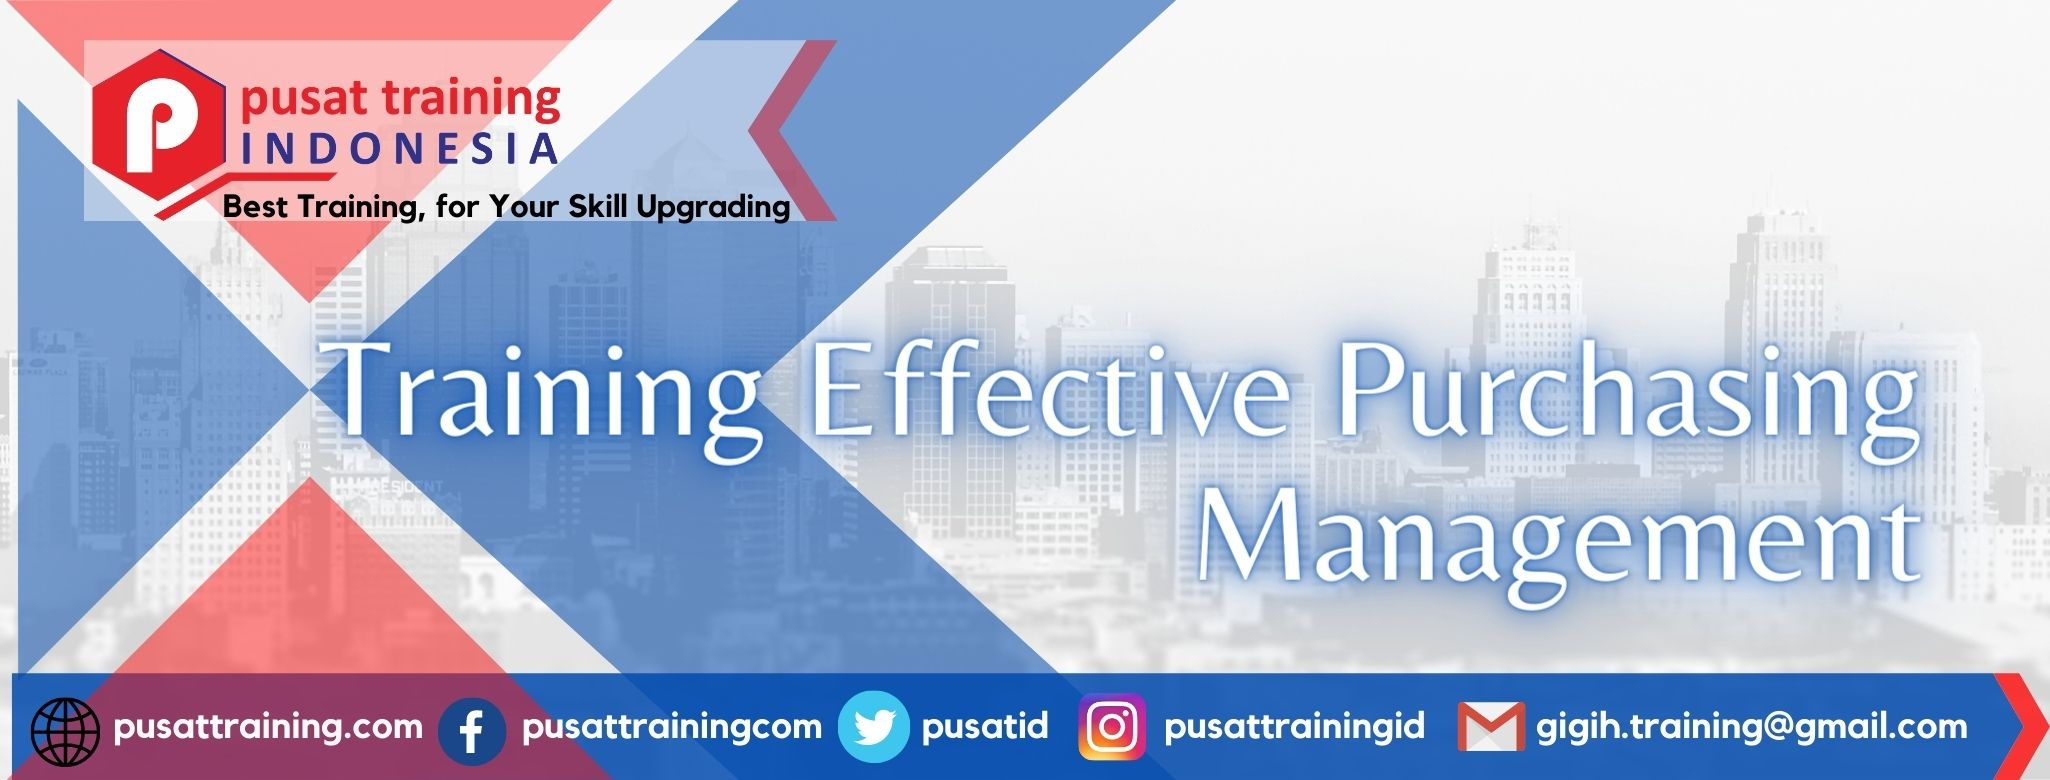 Training Effective Purchasing Management